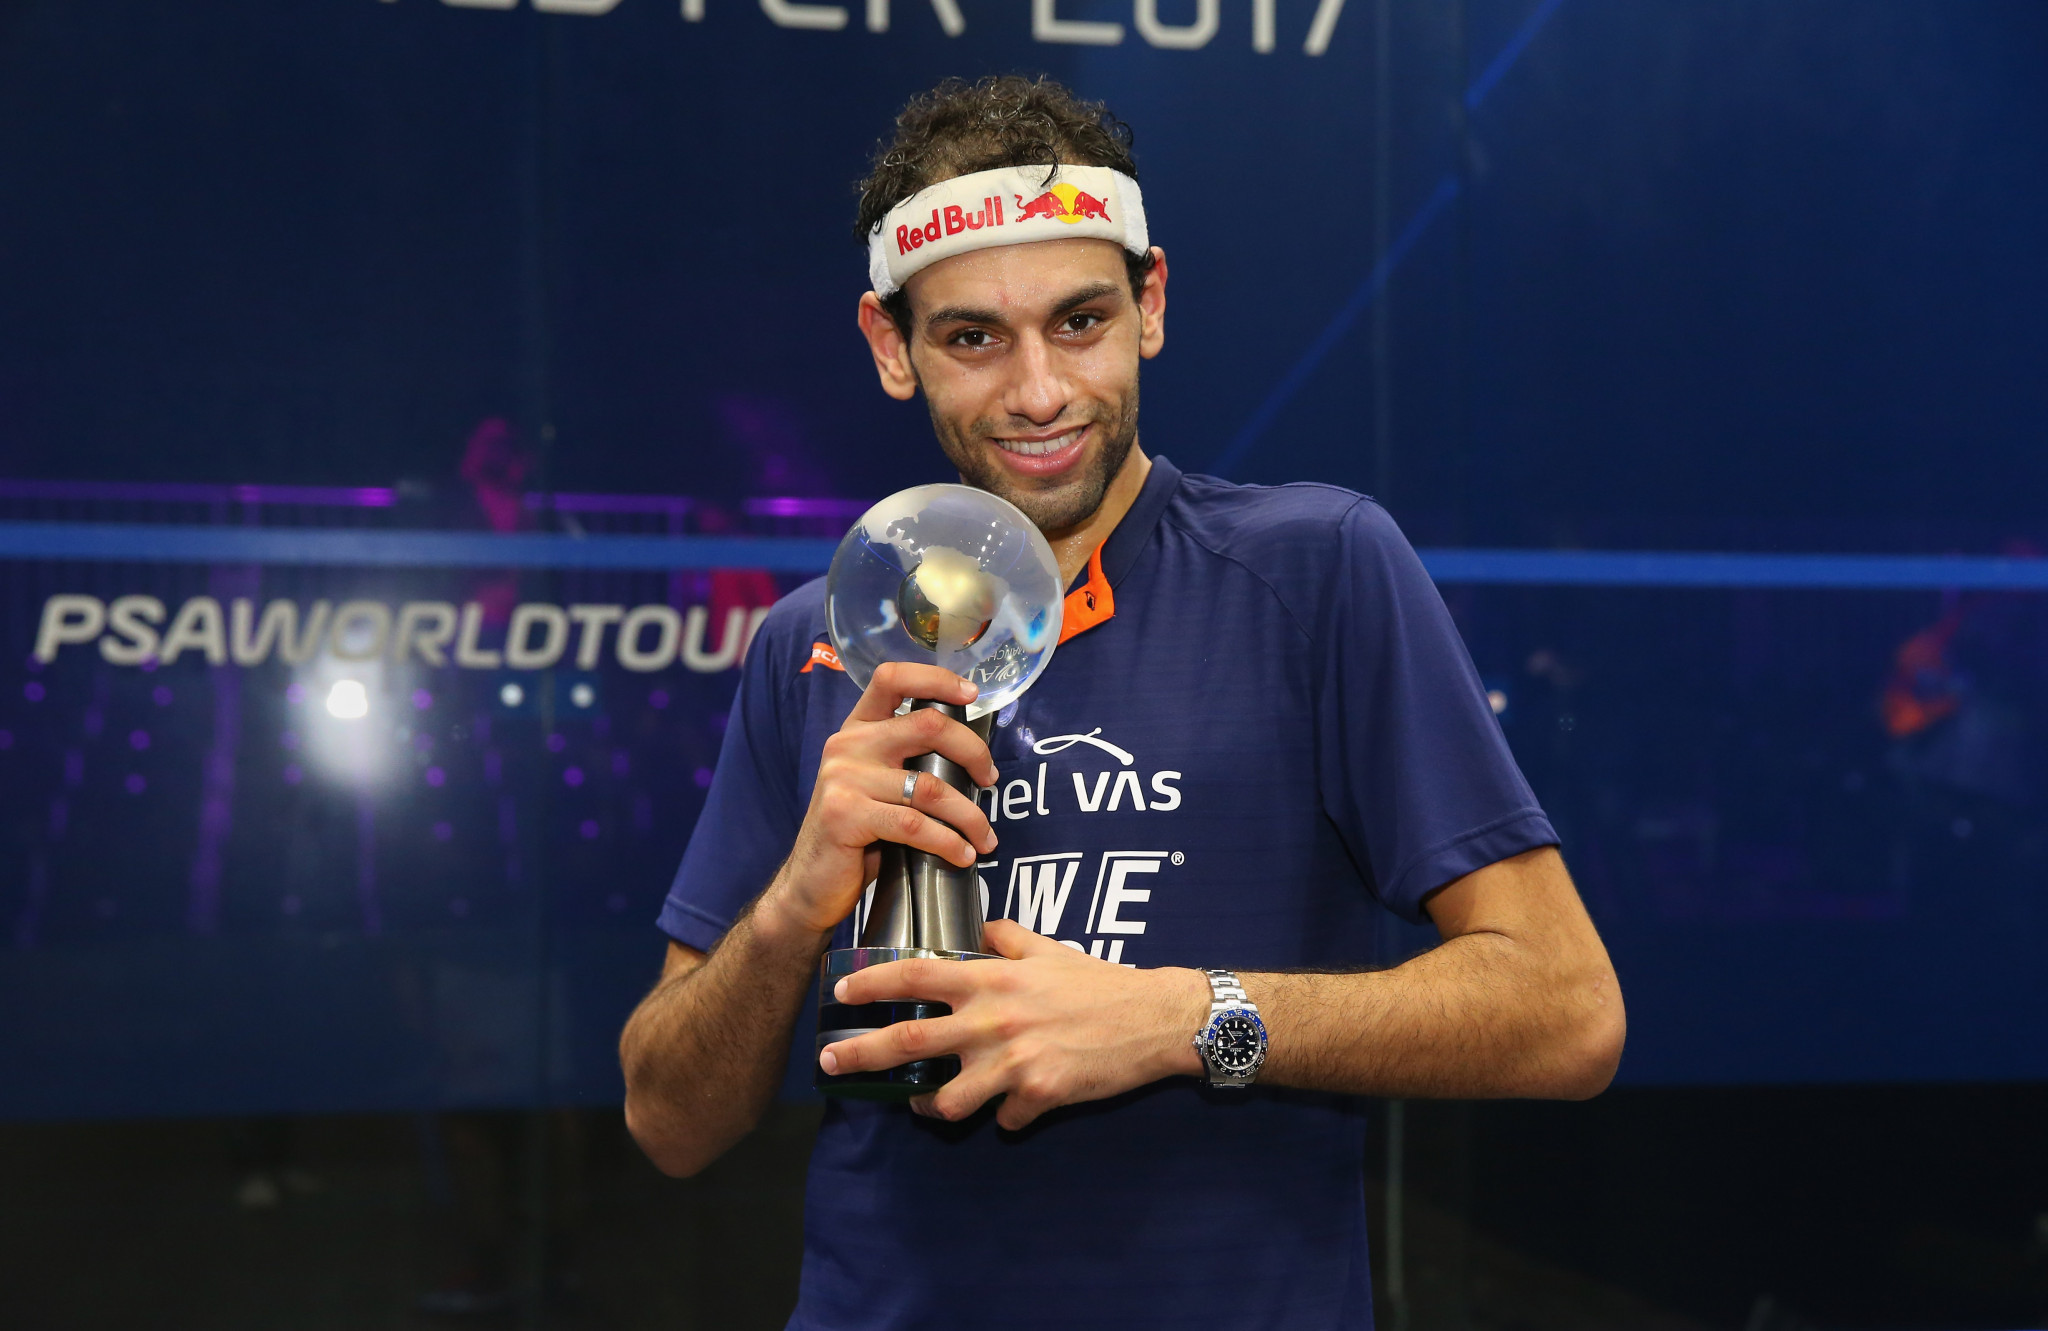 World champion Elshorbagy closes in on number one spot in PSA rankings